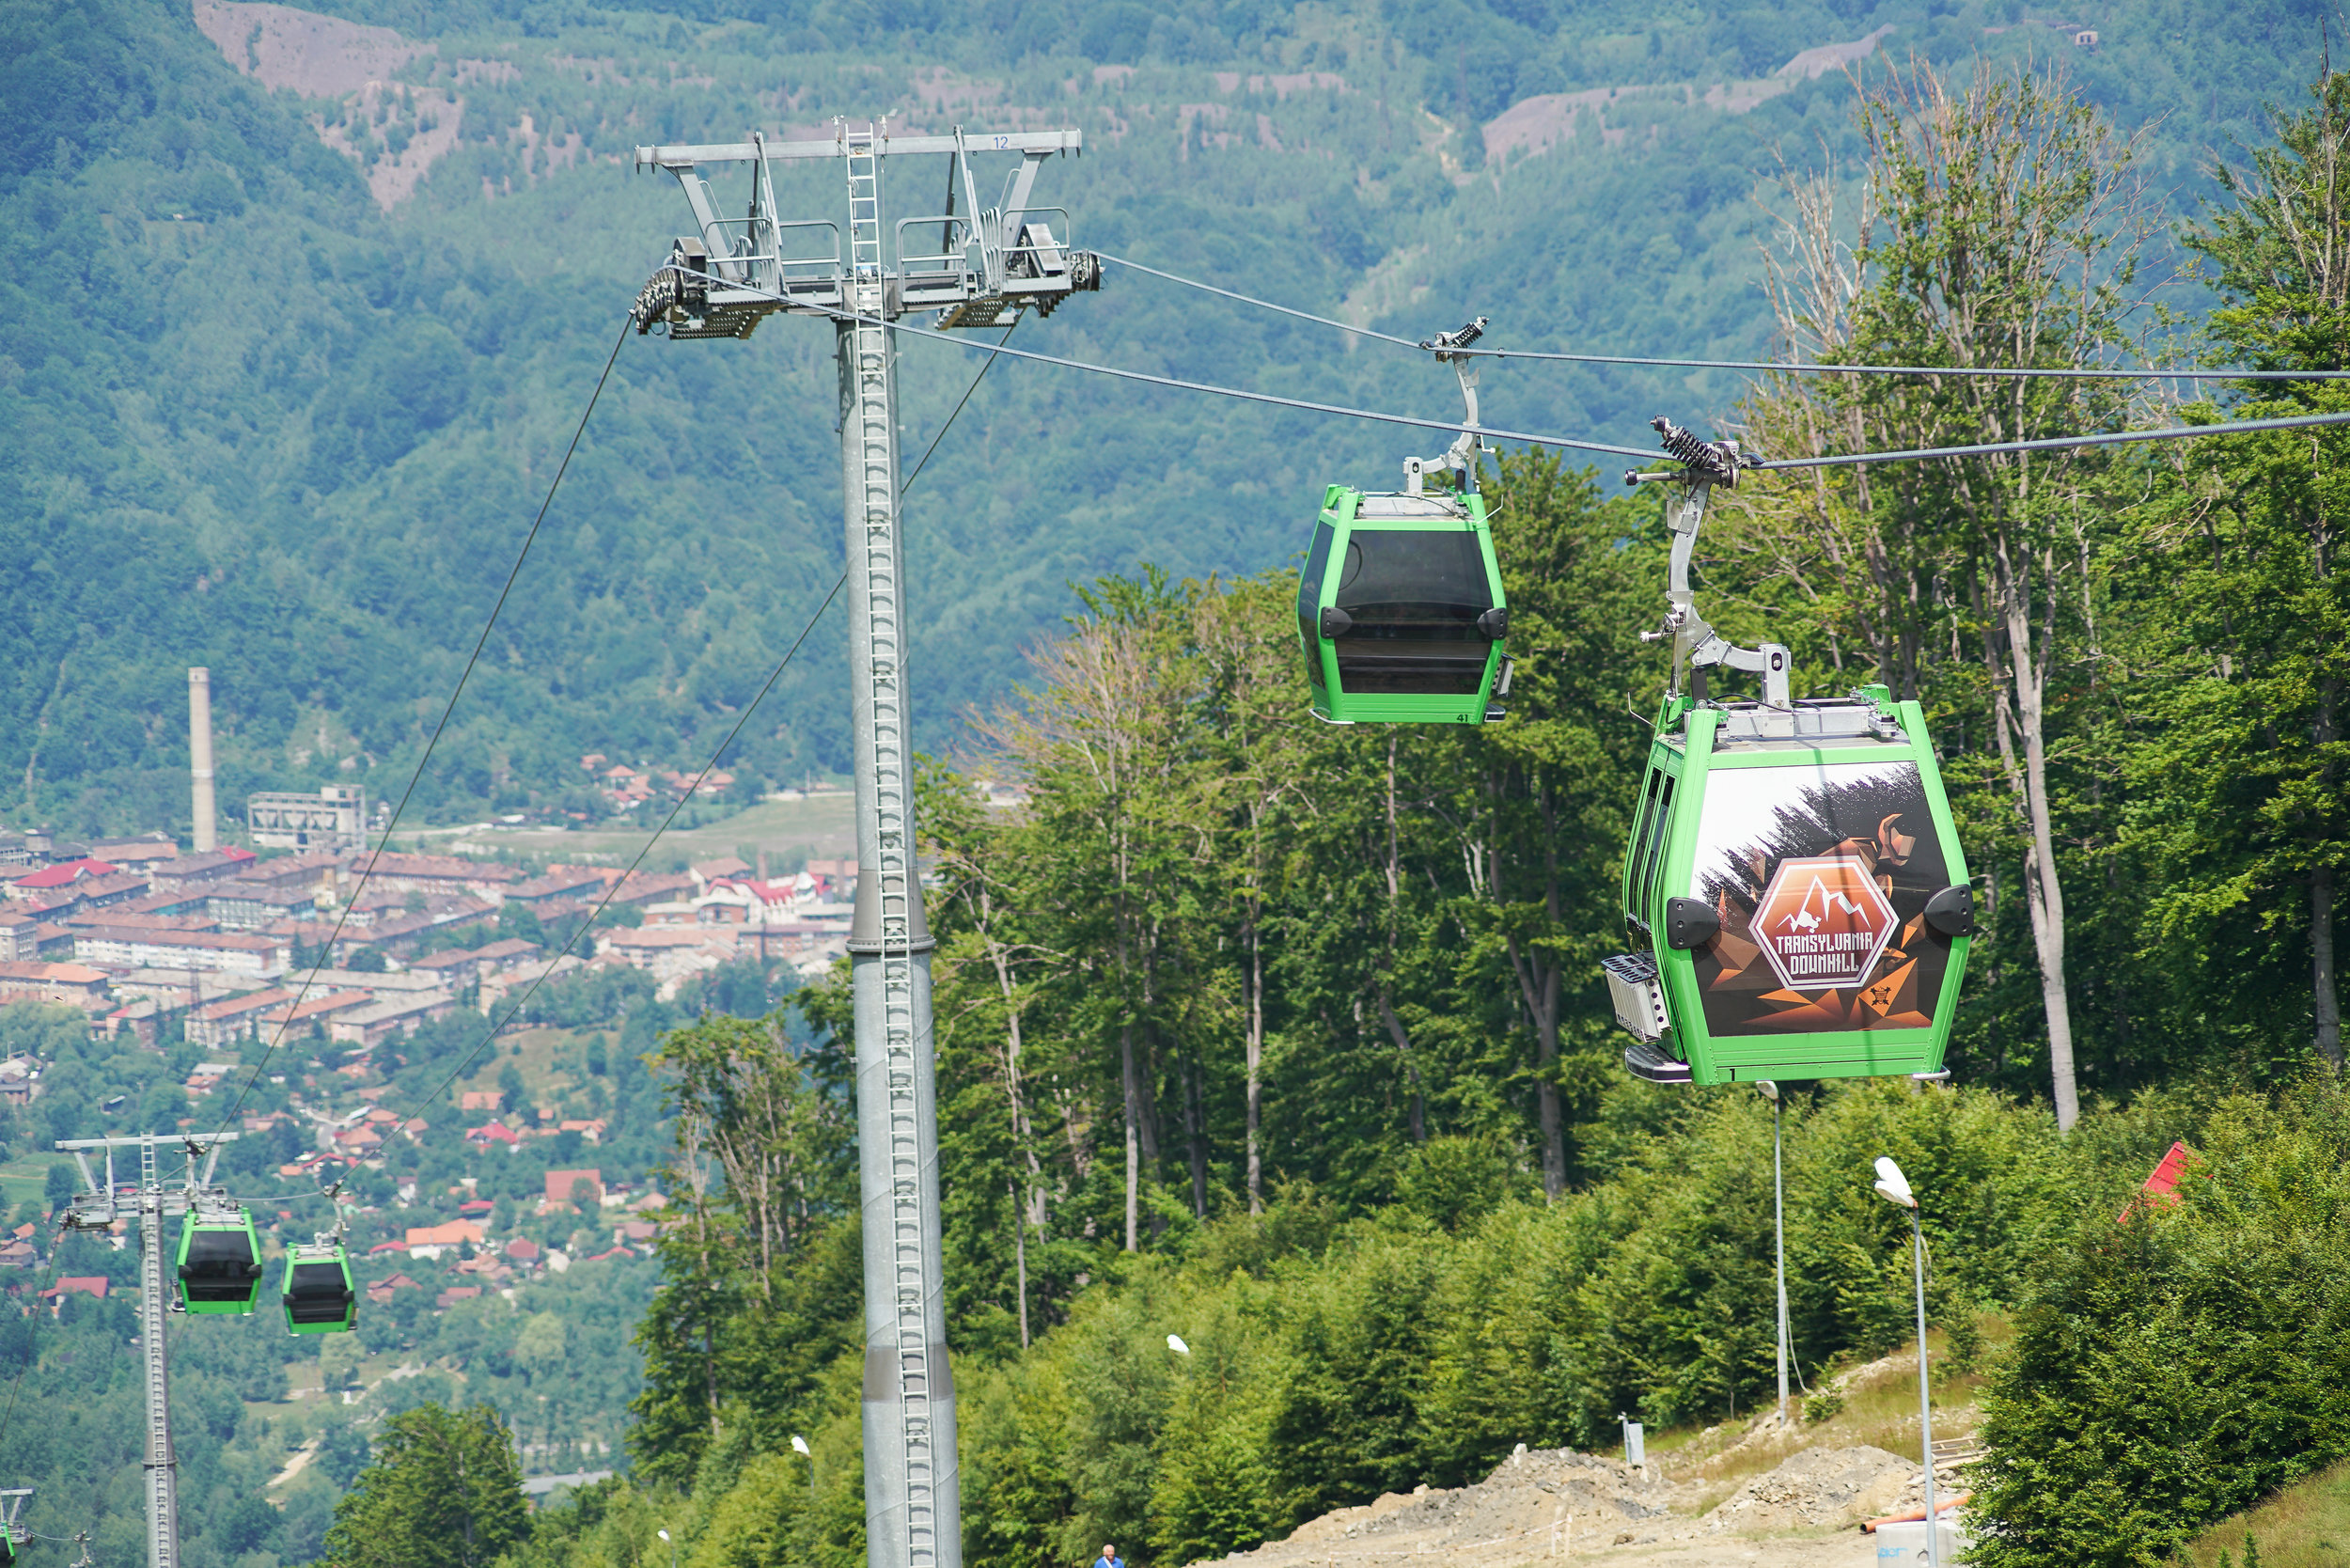 Gondola rides proved to be major key for ease and efficiency. Plus watching the course on the ride up is pretty badass!